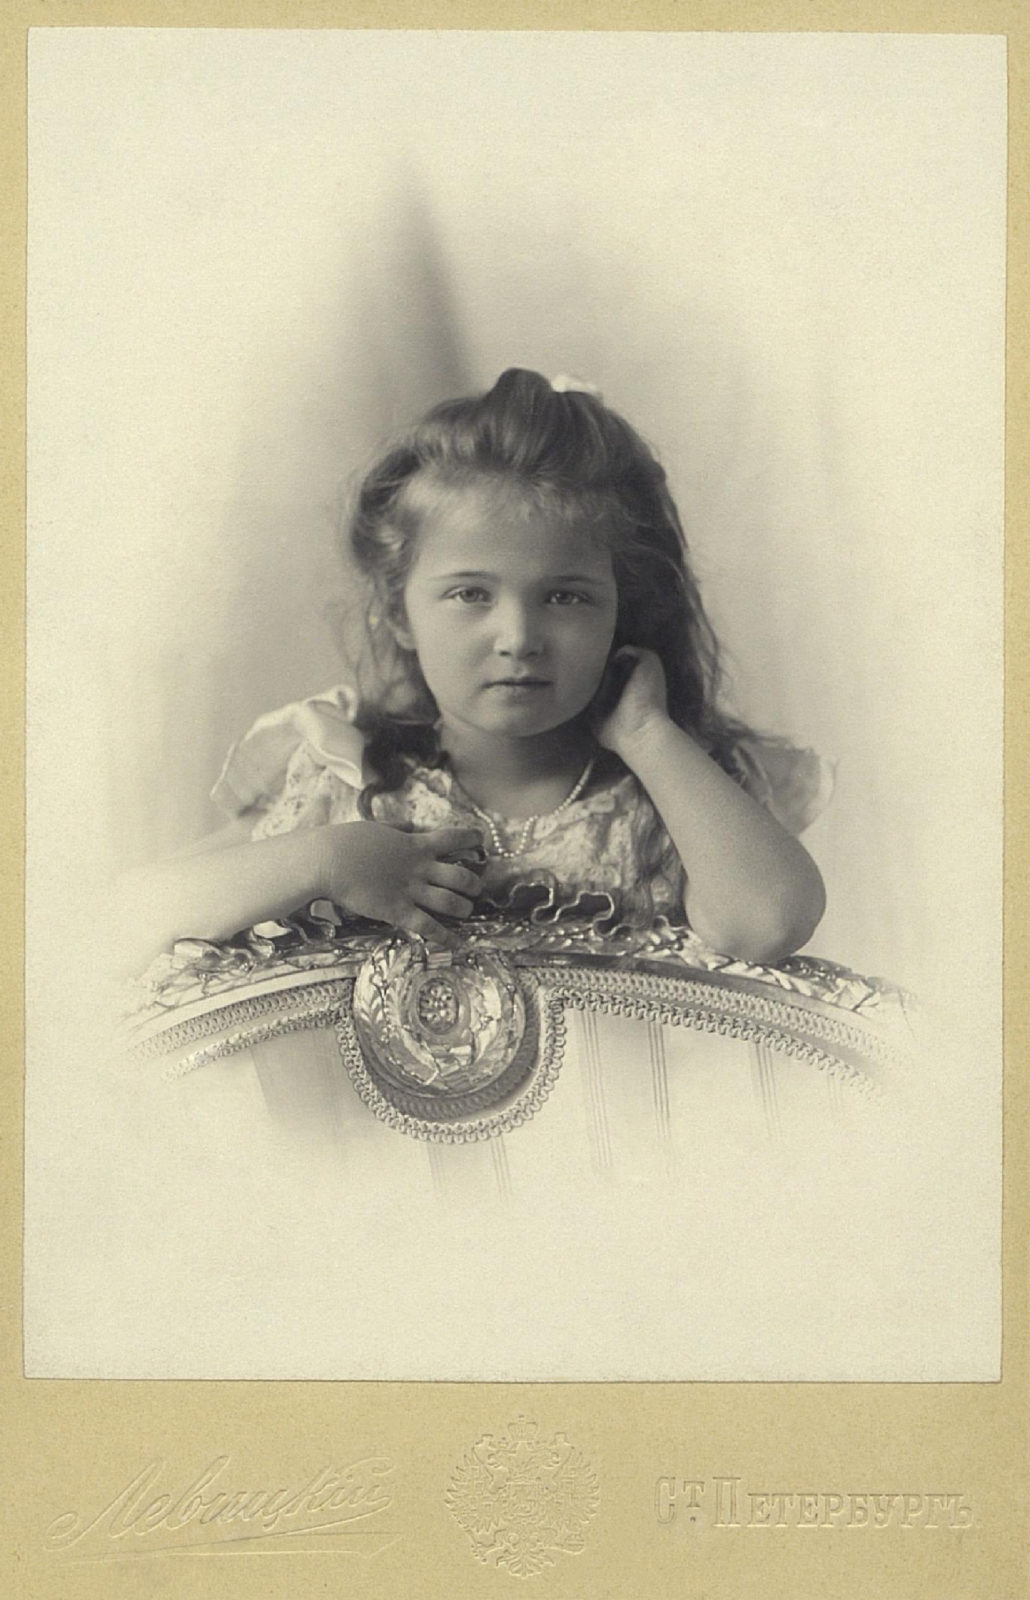 Grand Duchess Olga Nikolaevna. The first daughter of Emperor Nicholas II and Empress Alexandra Feodorovna. Photo of Levitsky, 1901.